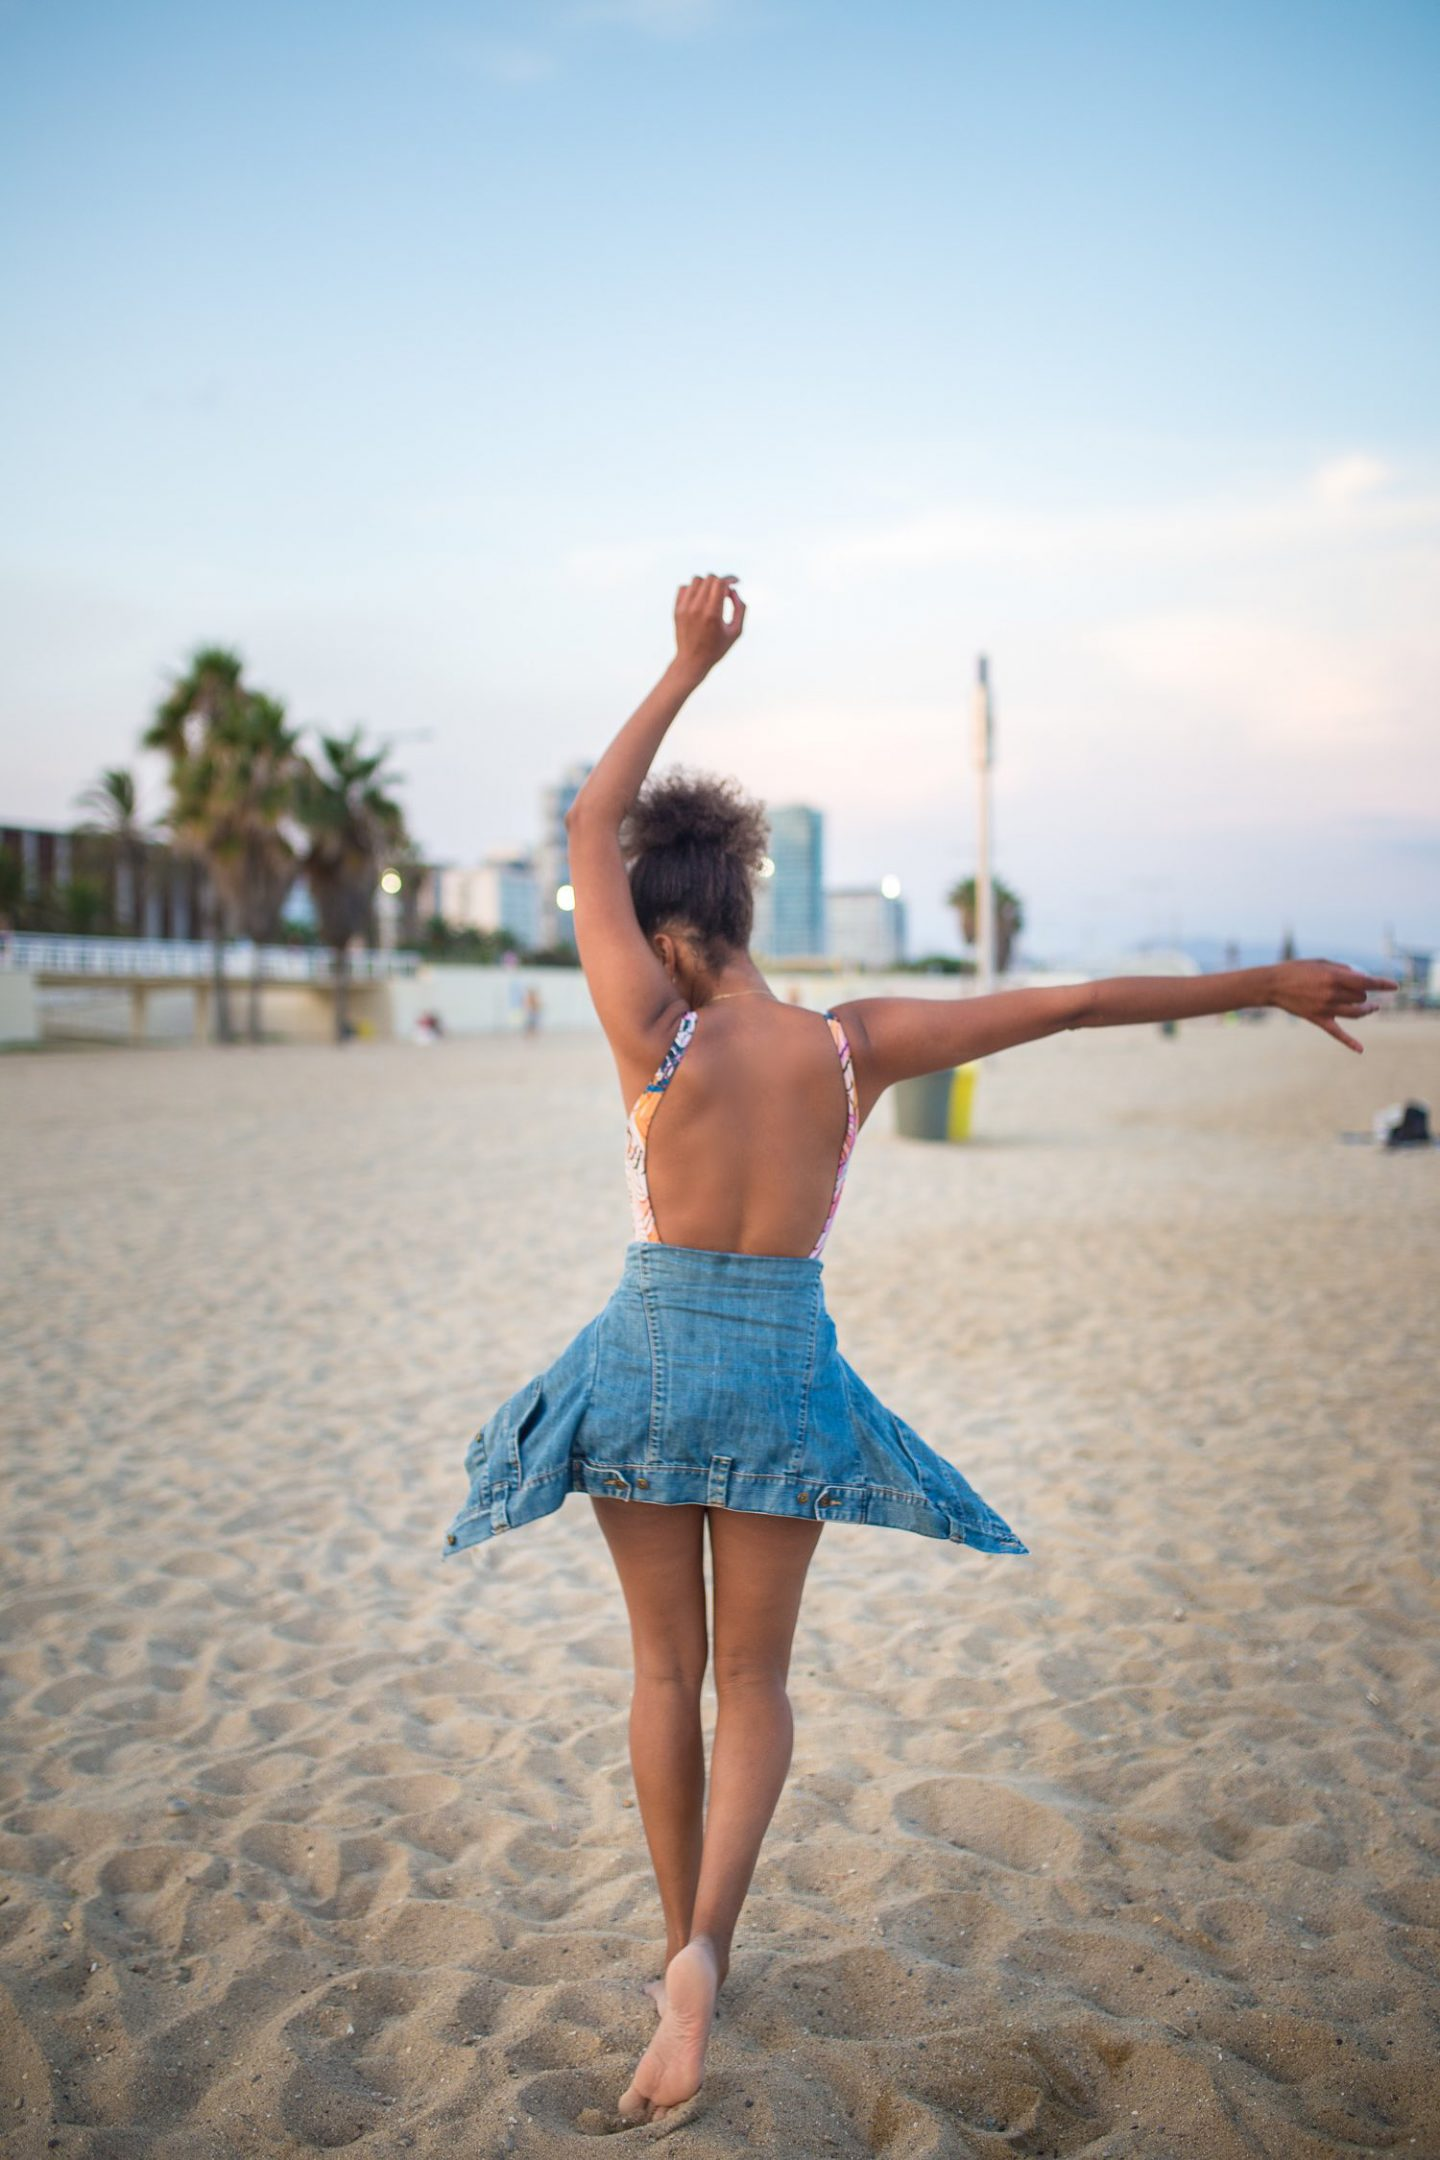 Curly Girl at the Beach, Life Update from Spain, Corona in Spain, Black Fashion Blogger